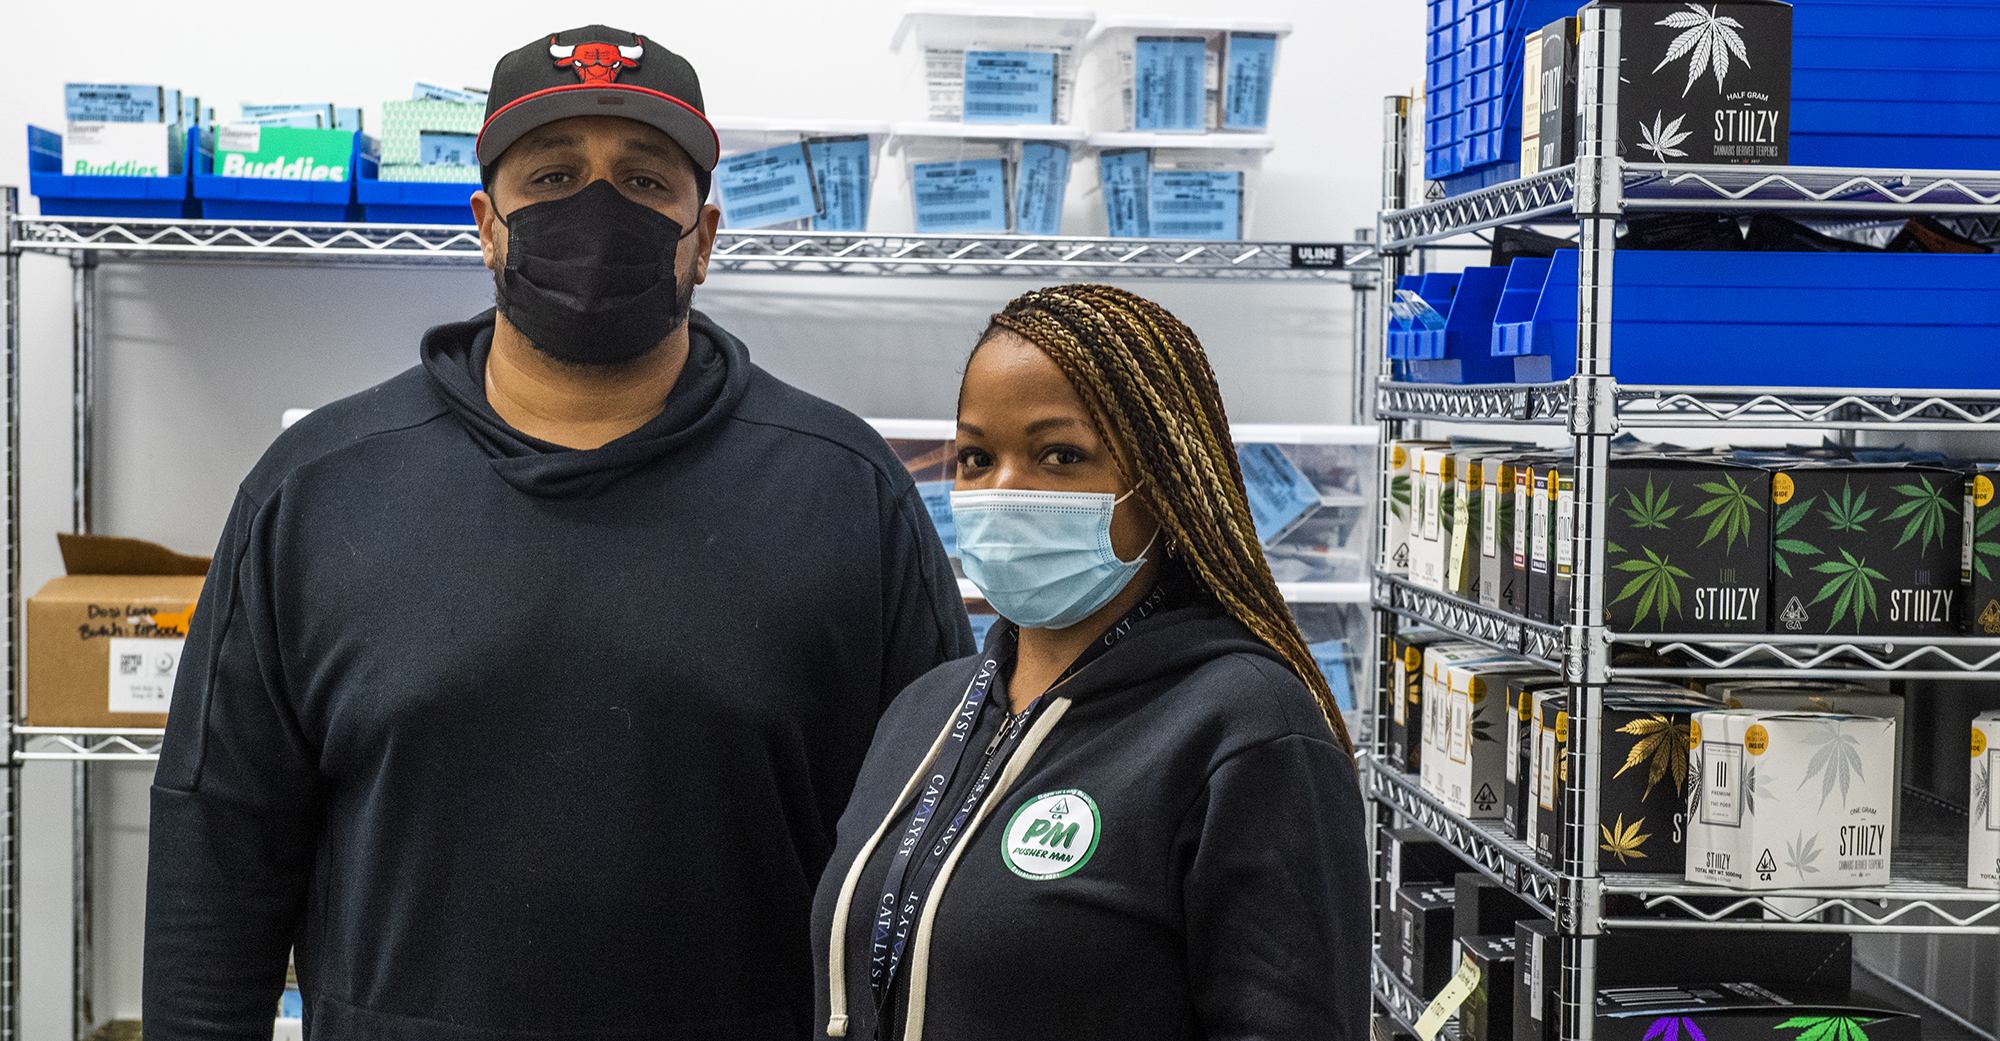 A new cannabis delivery service aims to bring more diversity to the Long Beach cannabis industry - Long Beach Business Journal